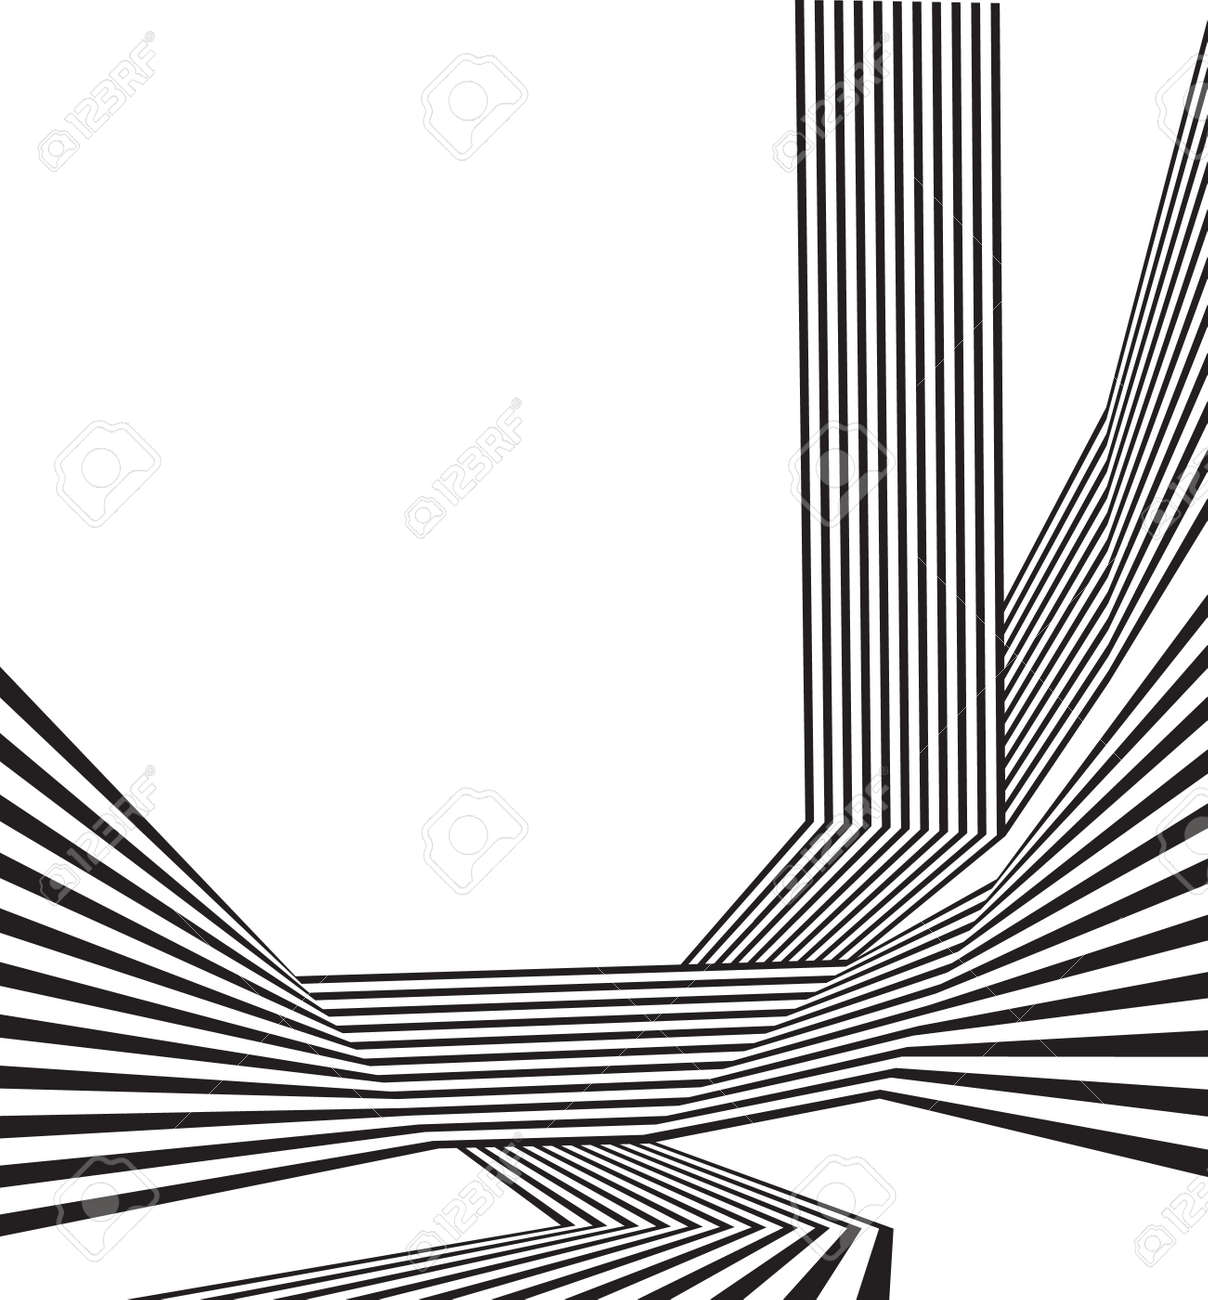 black and white mobious wave stripe optical abstract design - 53861648